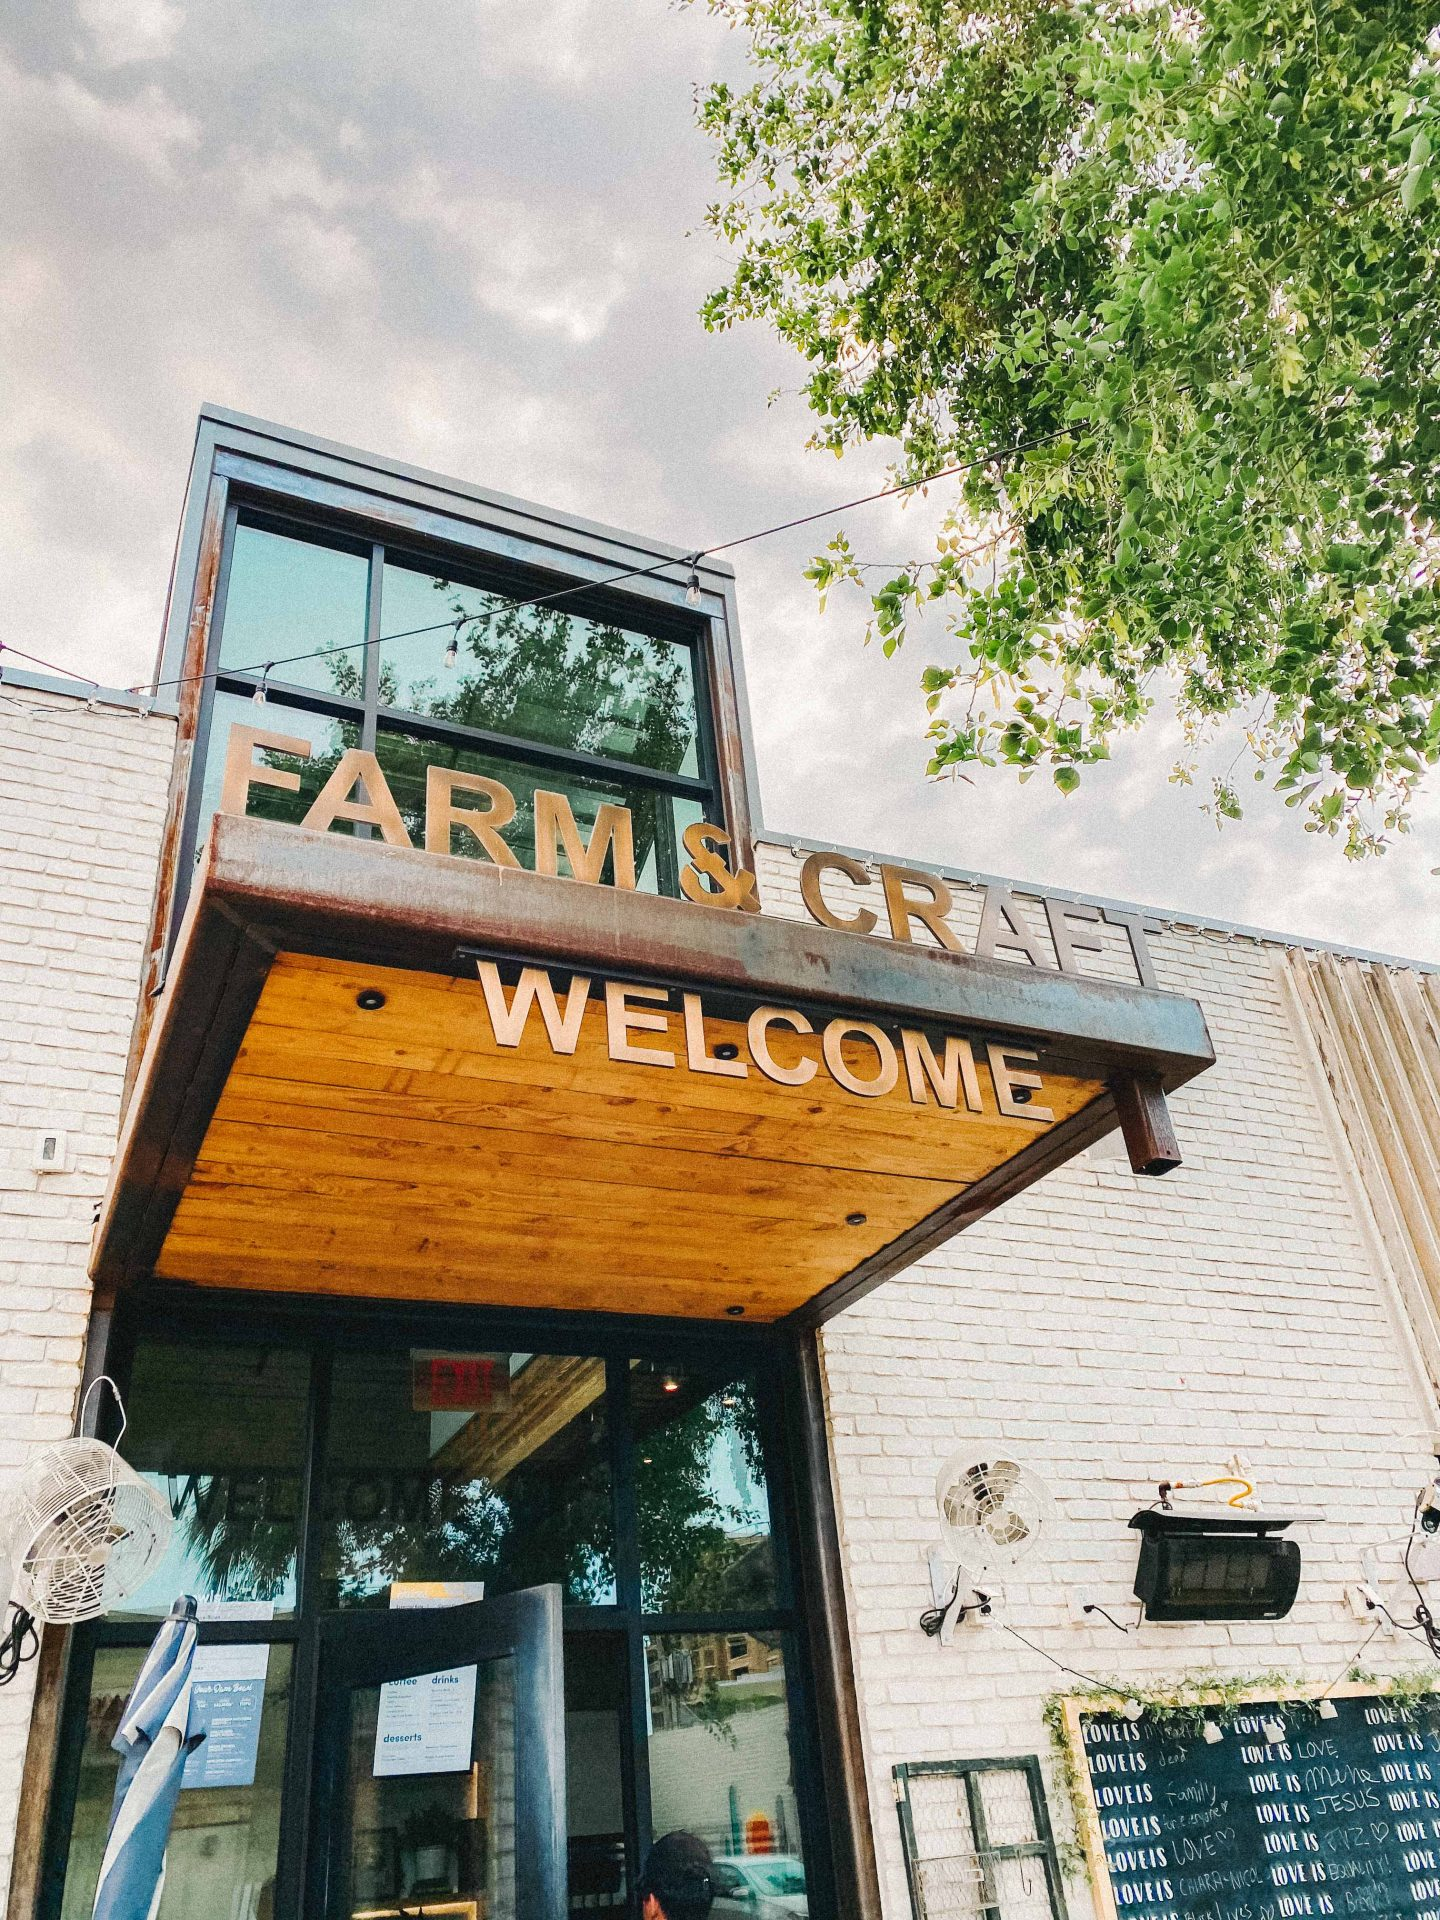 Farm and Craft, Scottsdale Arizona, Travel Guide, Where to Eat in Scottsdale AZ, Best coffee shops in Arizona, Arizona guide, traveling food, ultimate guide, scottsdale, farm to table, healthy eating